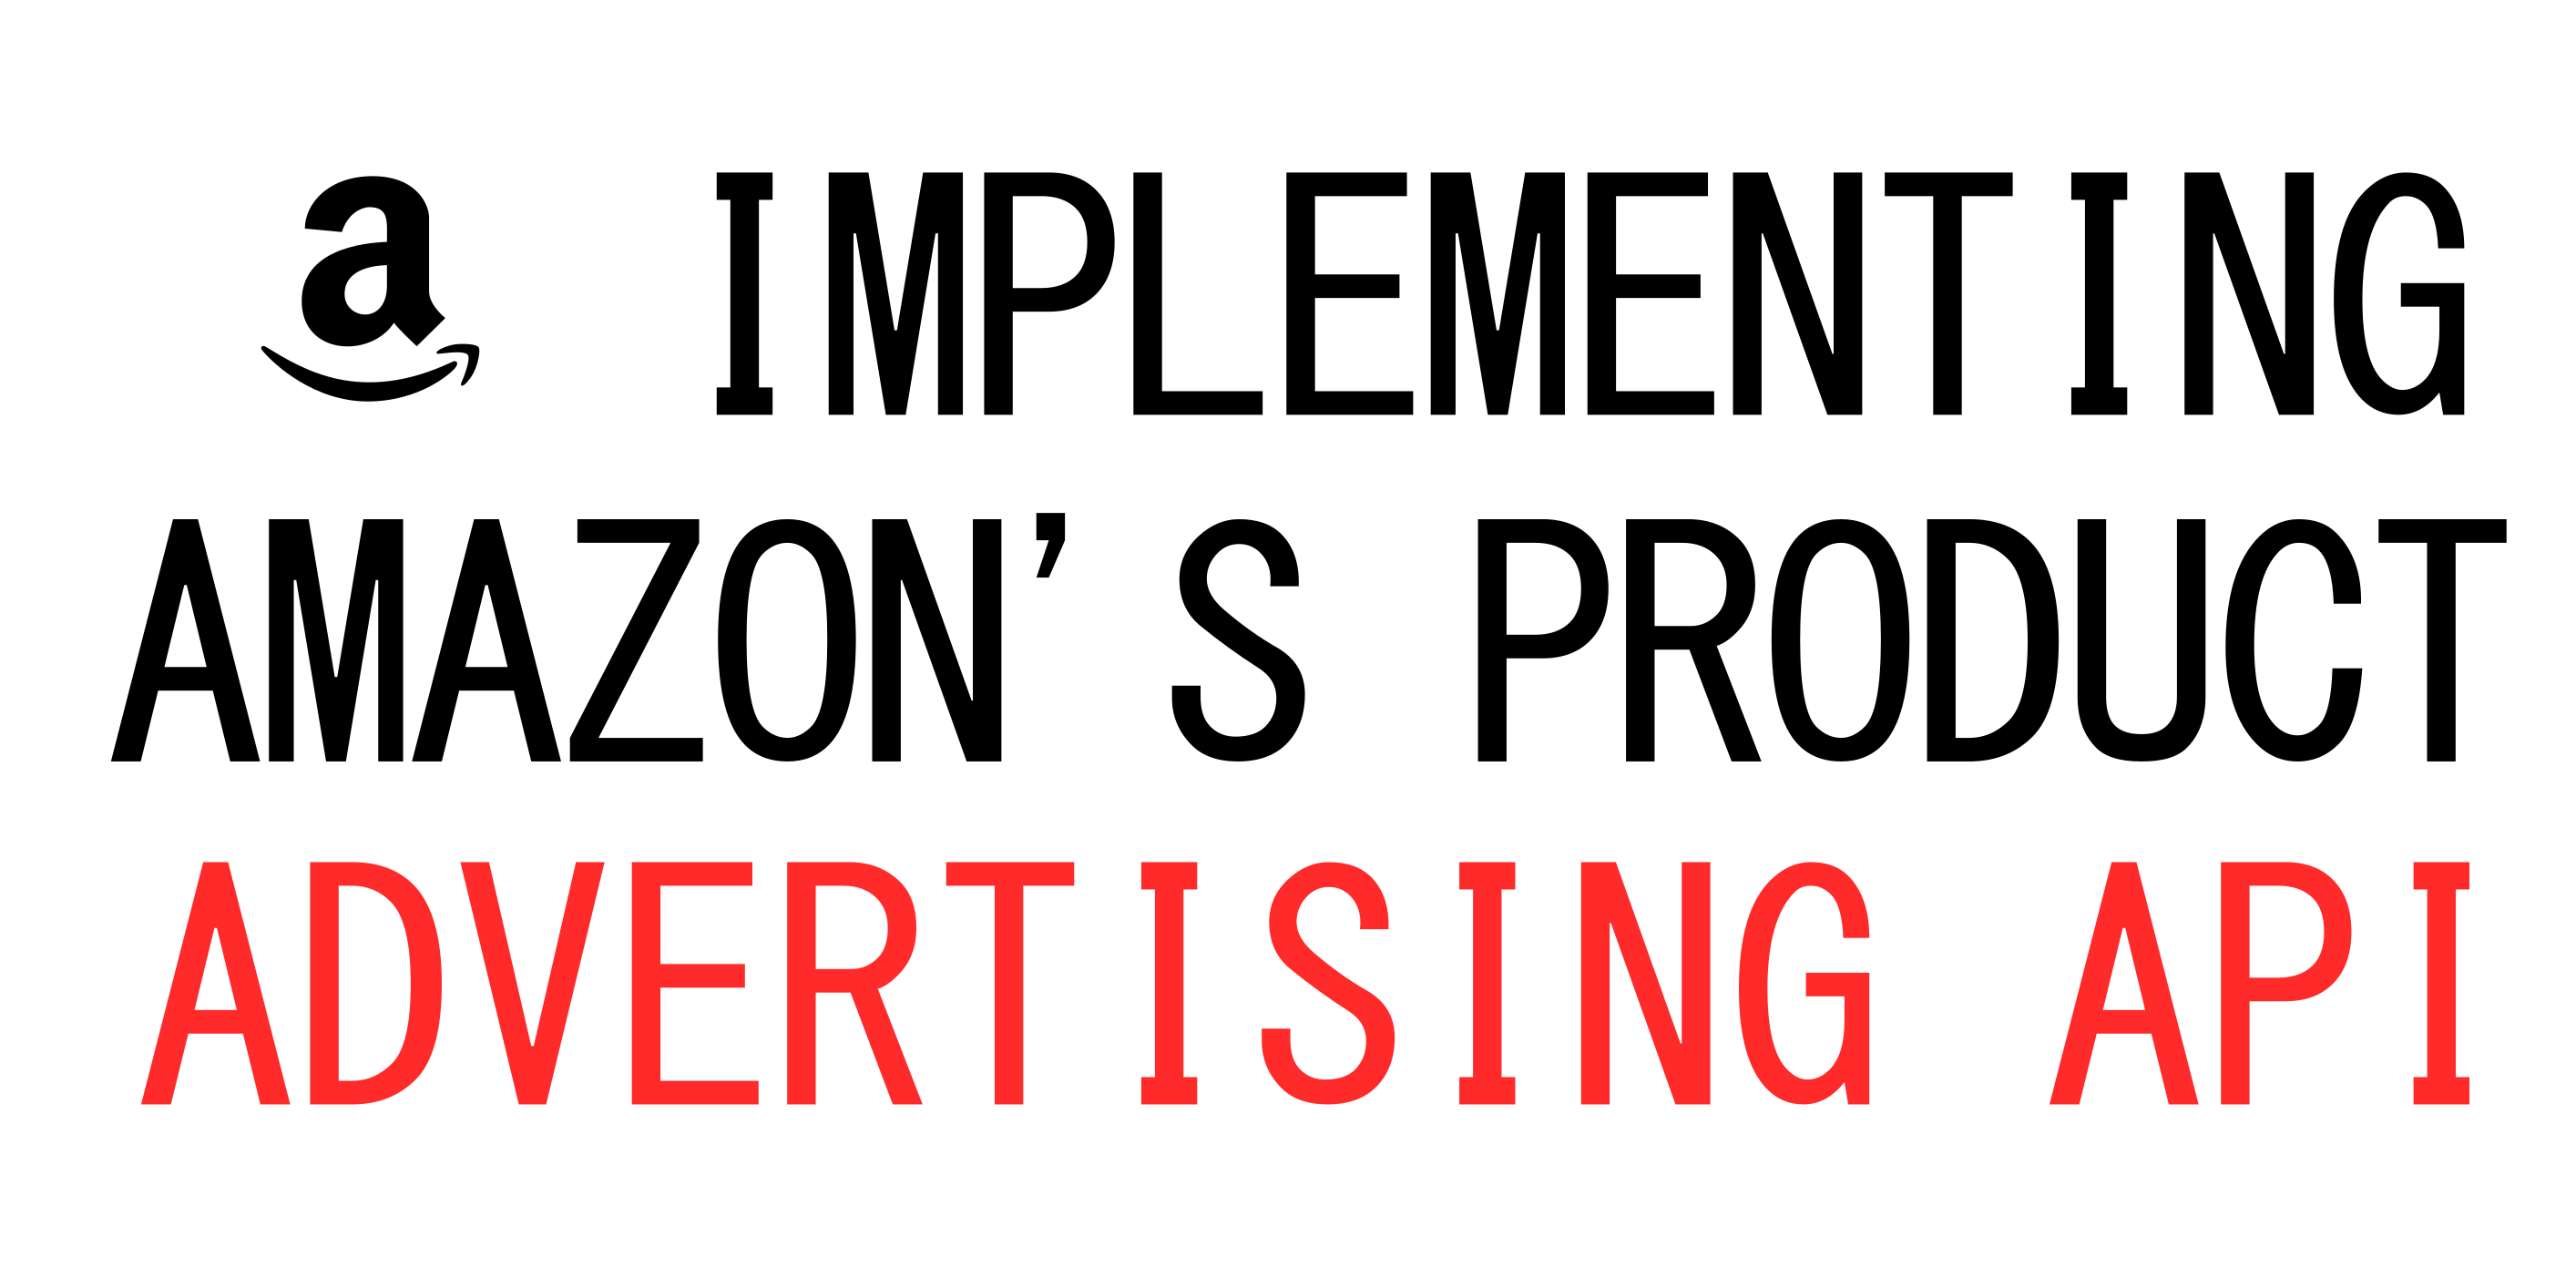 Implementing Amazon's Product Advertising API In C#